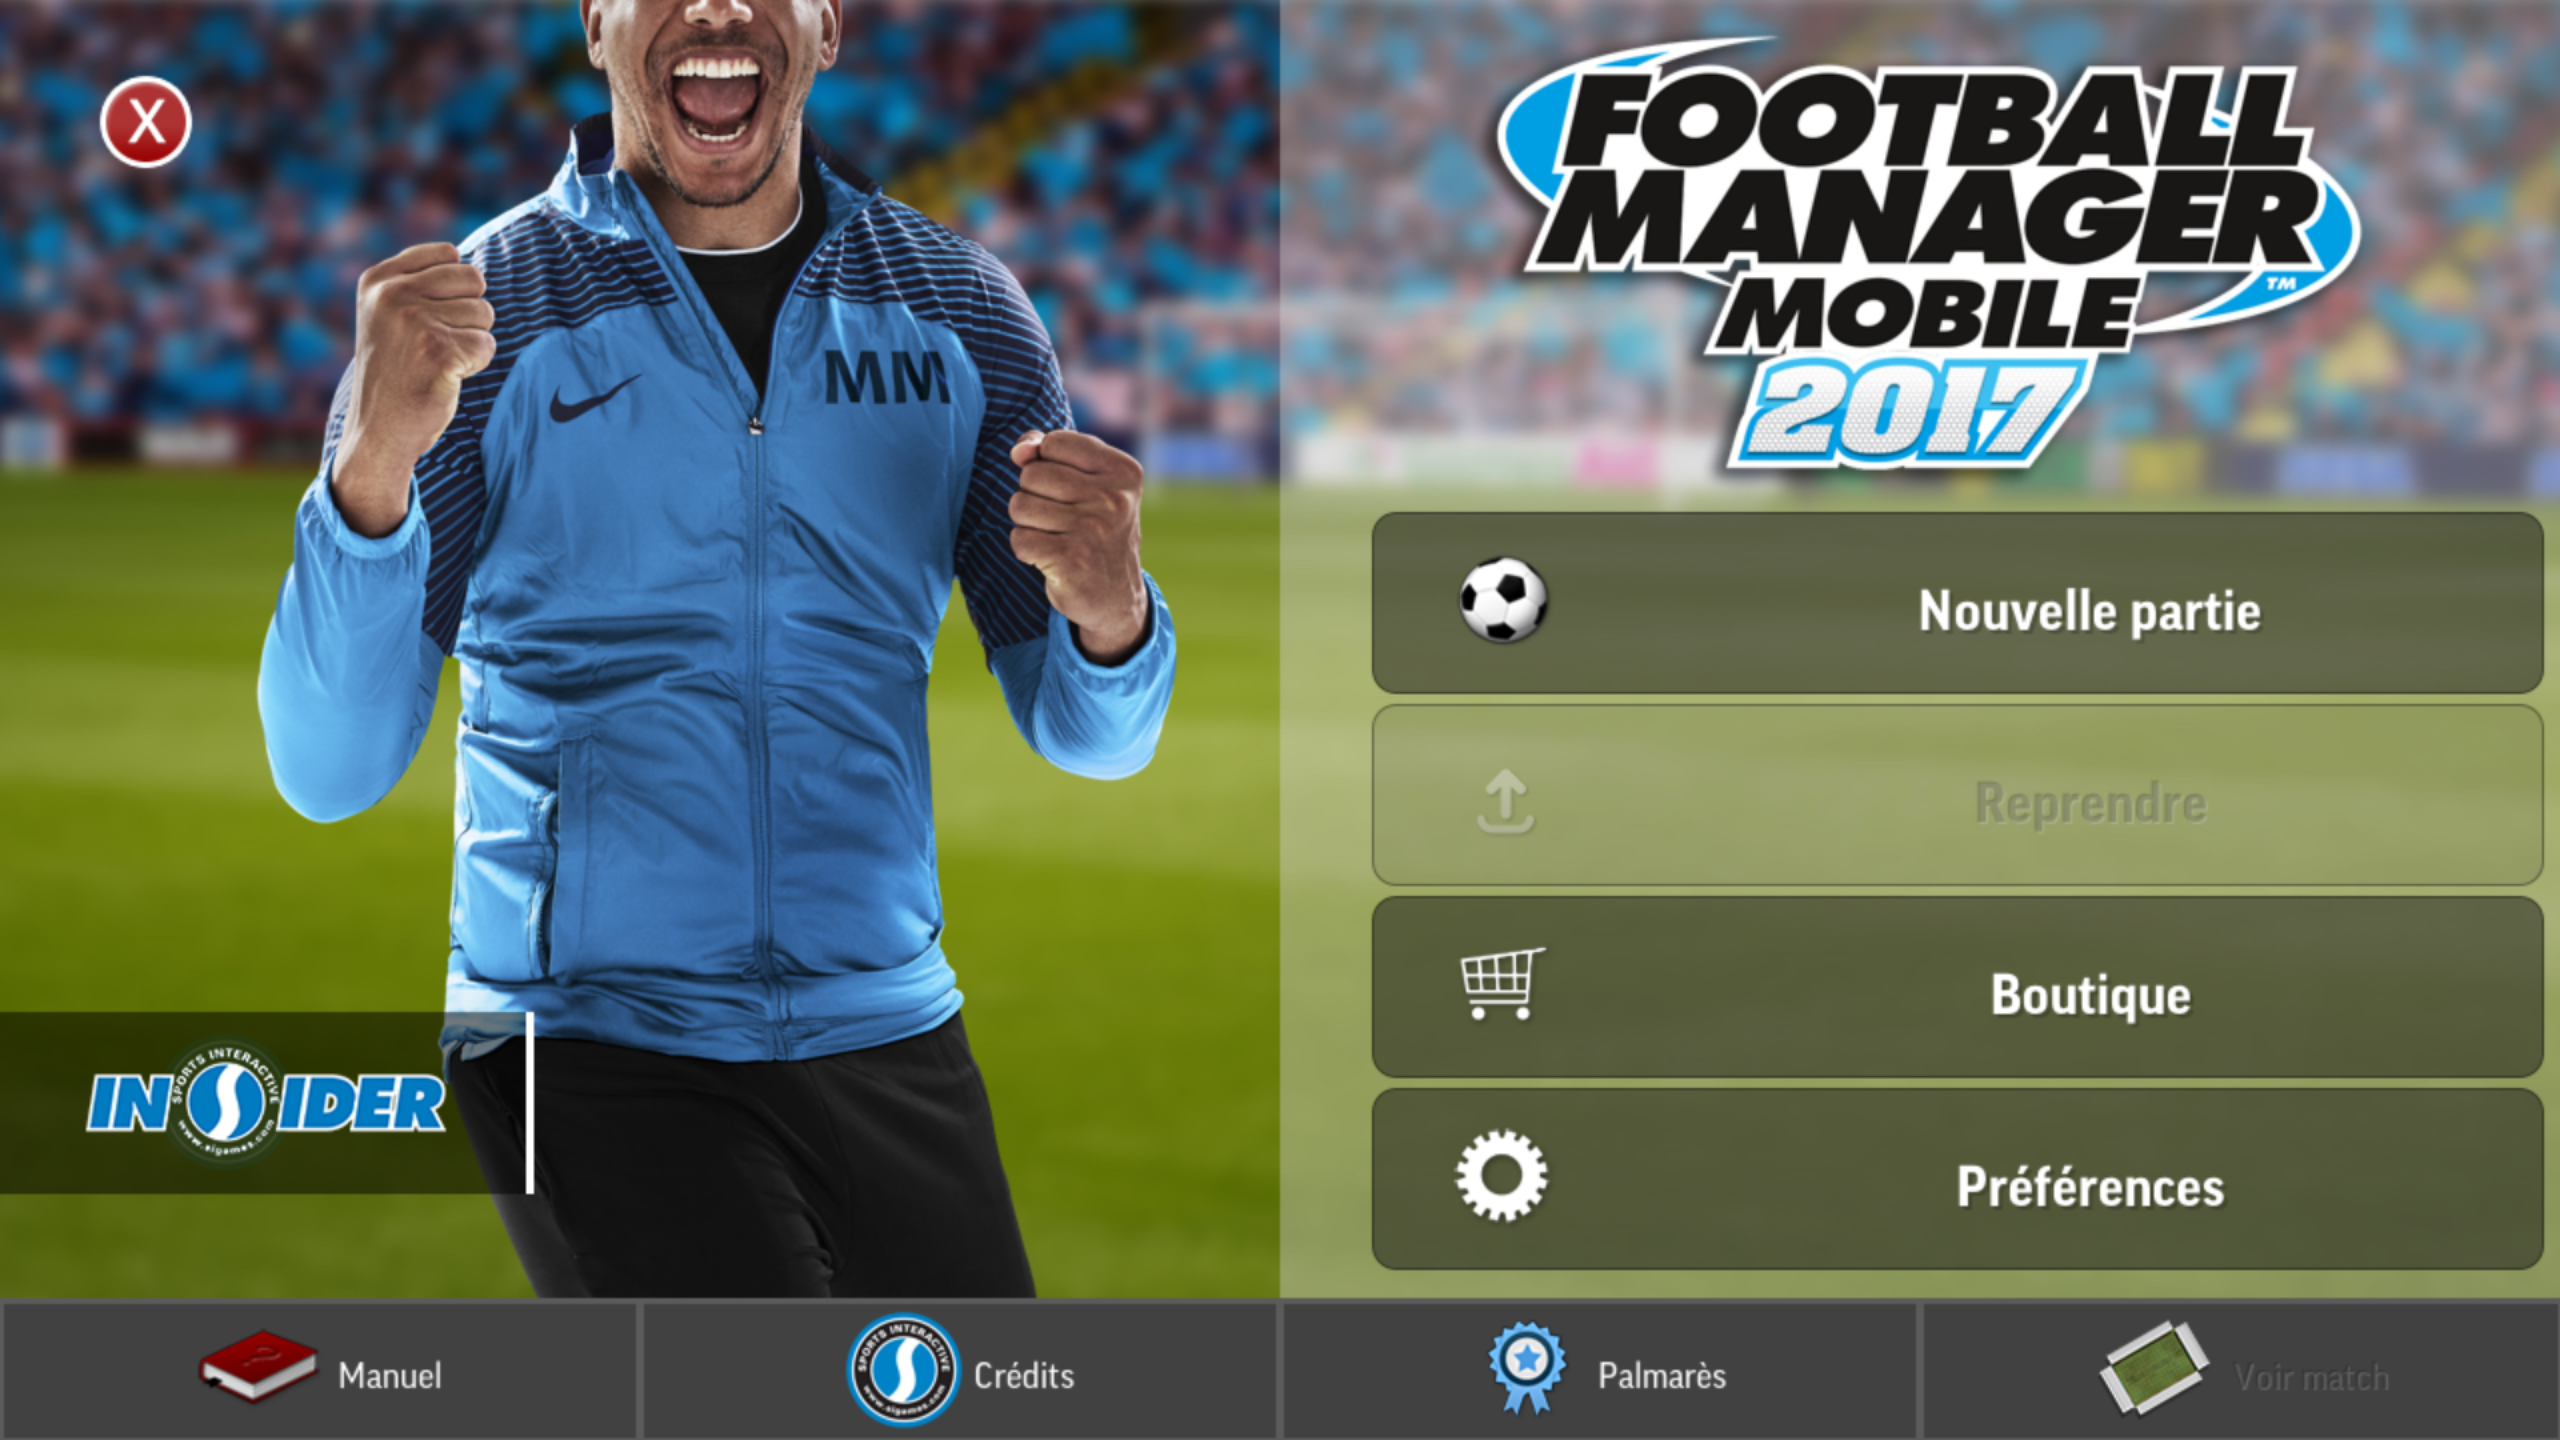 football-manager-mobile-2017-iphone-1